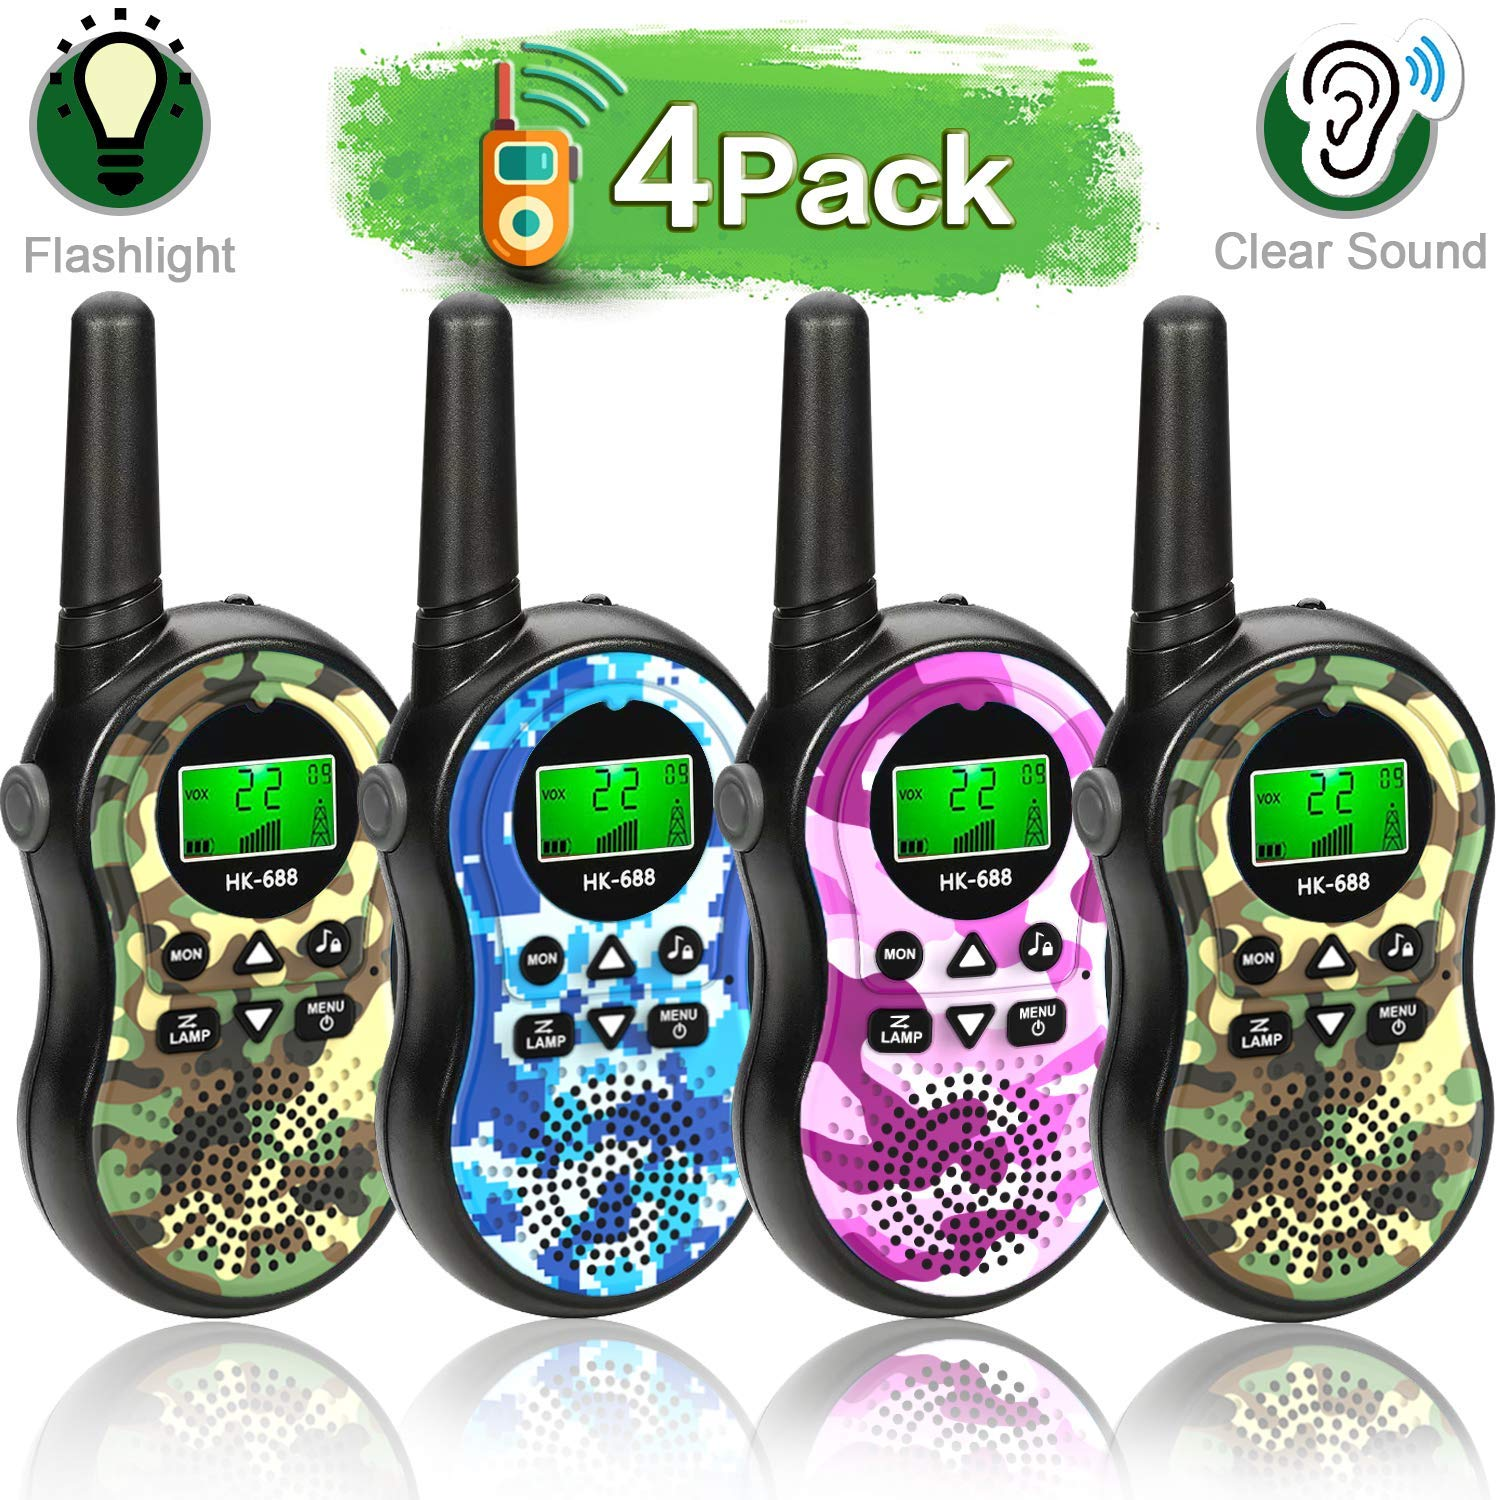 4 Pack Walkie Talkies for Kids Outdoor Toys 22 Channels 2 Way Radio Long Range Handheld Walkie Talkies with LCD Flashlight Boys Girls Outdoor Adventure Game Camping Hiking Fun Gift(Packaging may vary) by Camlinbo (Image #1)